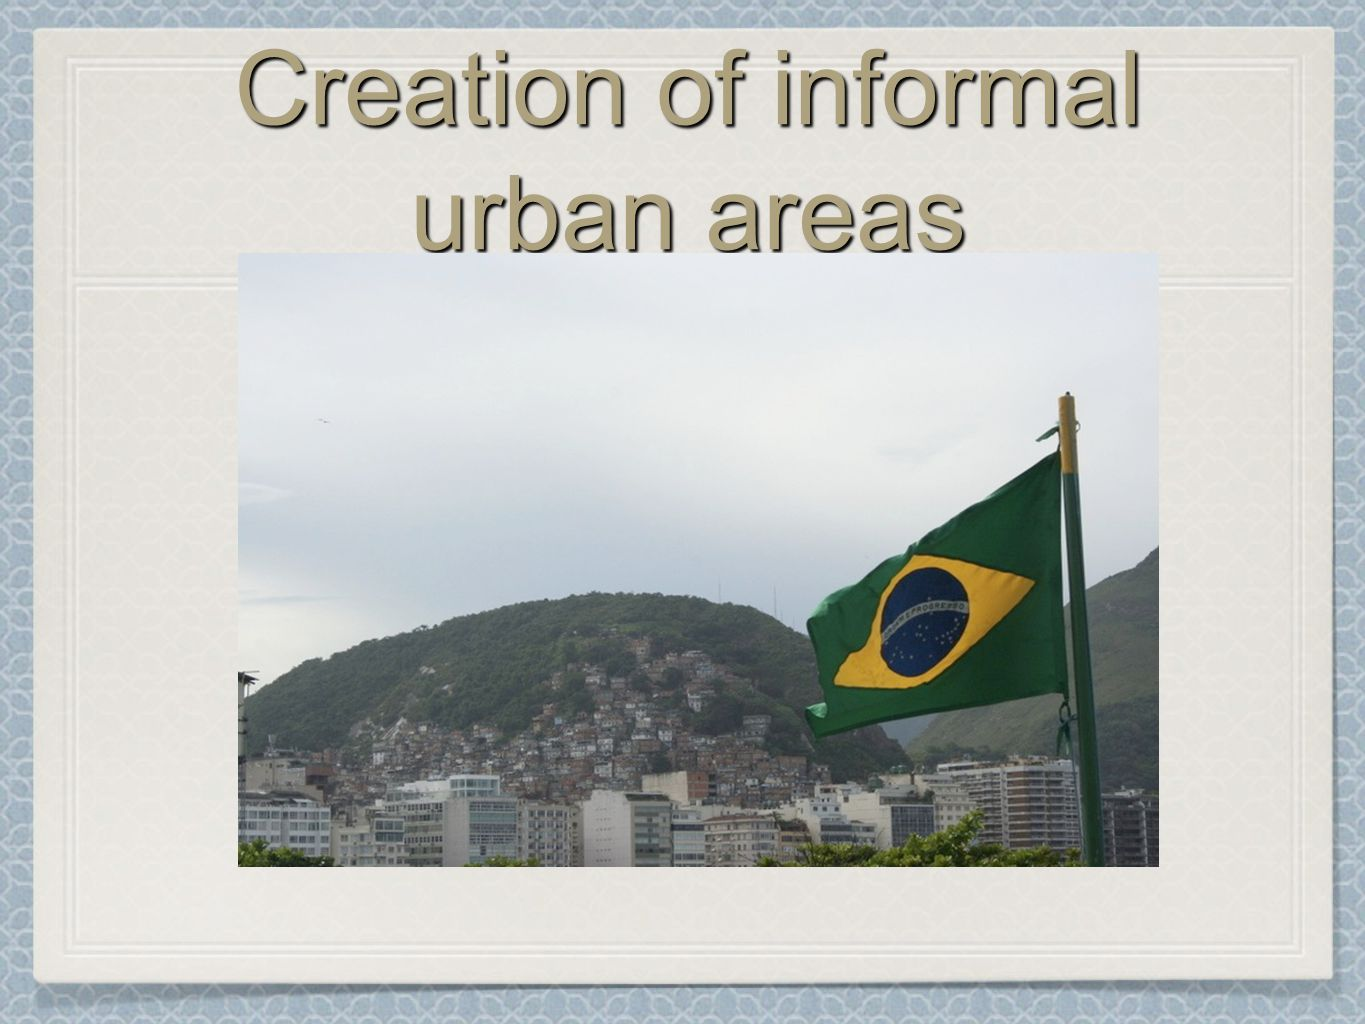 Creation of informal urban areas